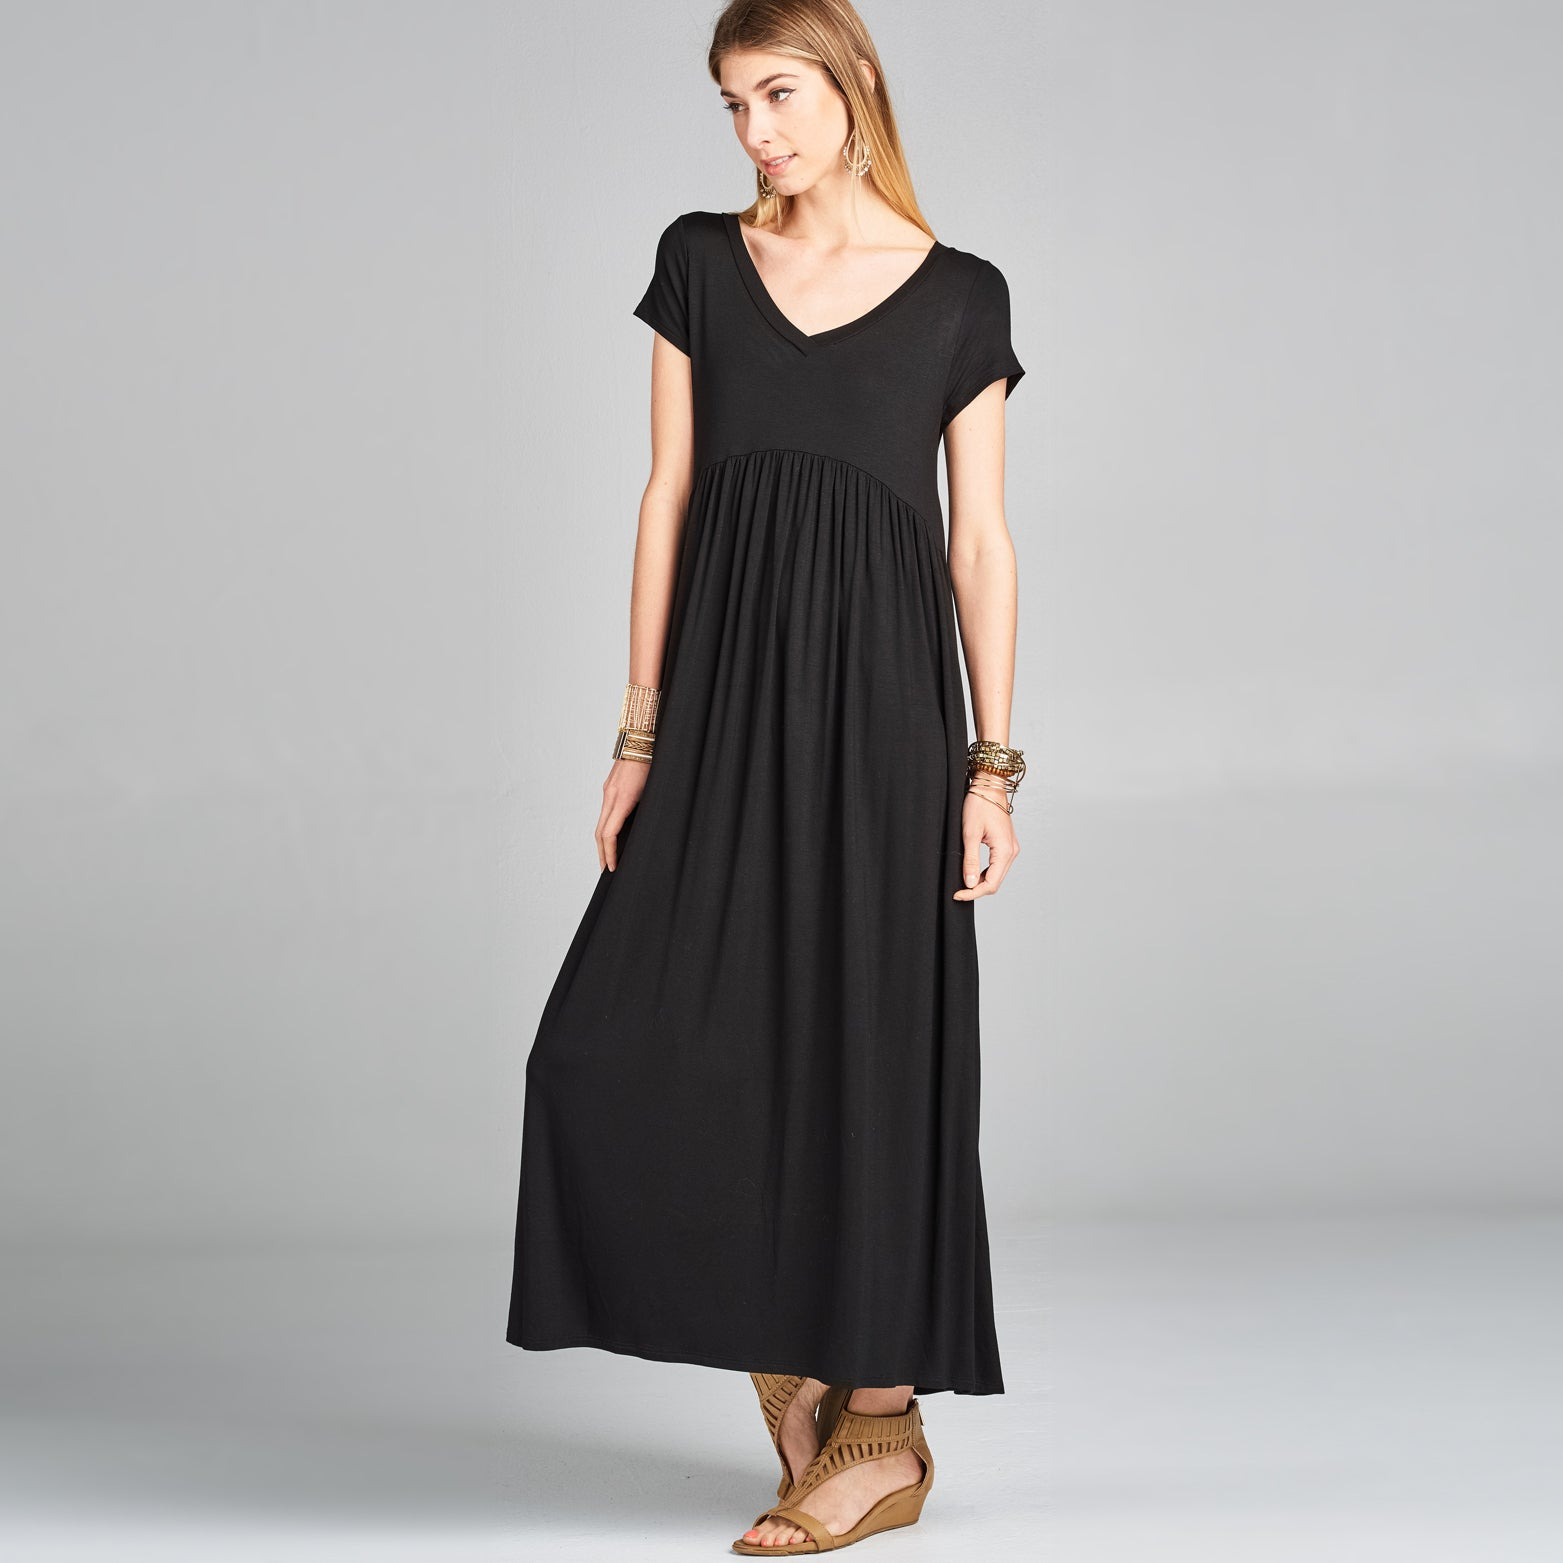 Everyday Relaxed Fit Maxi Dress